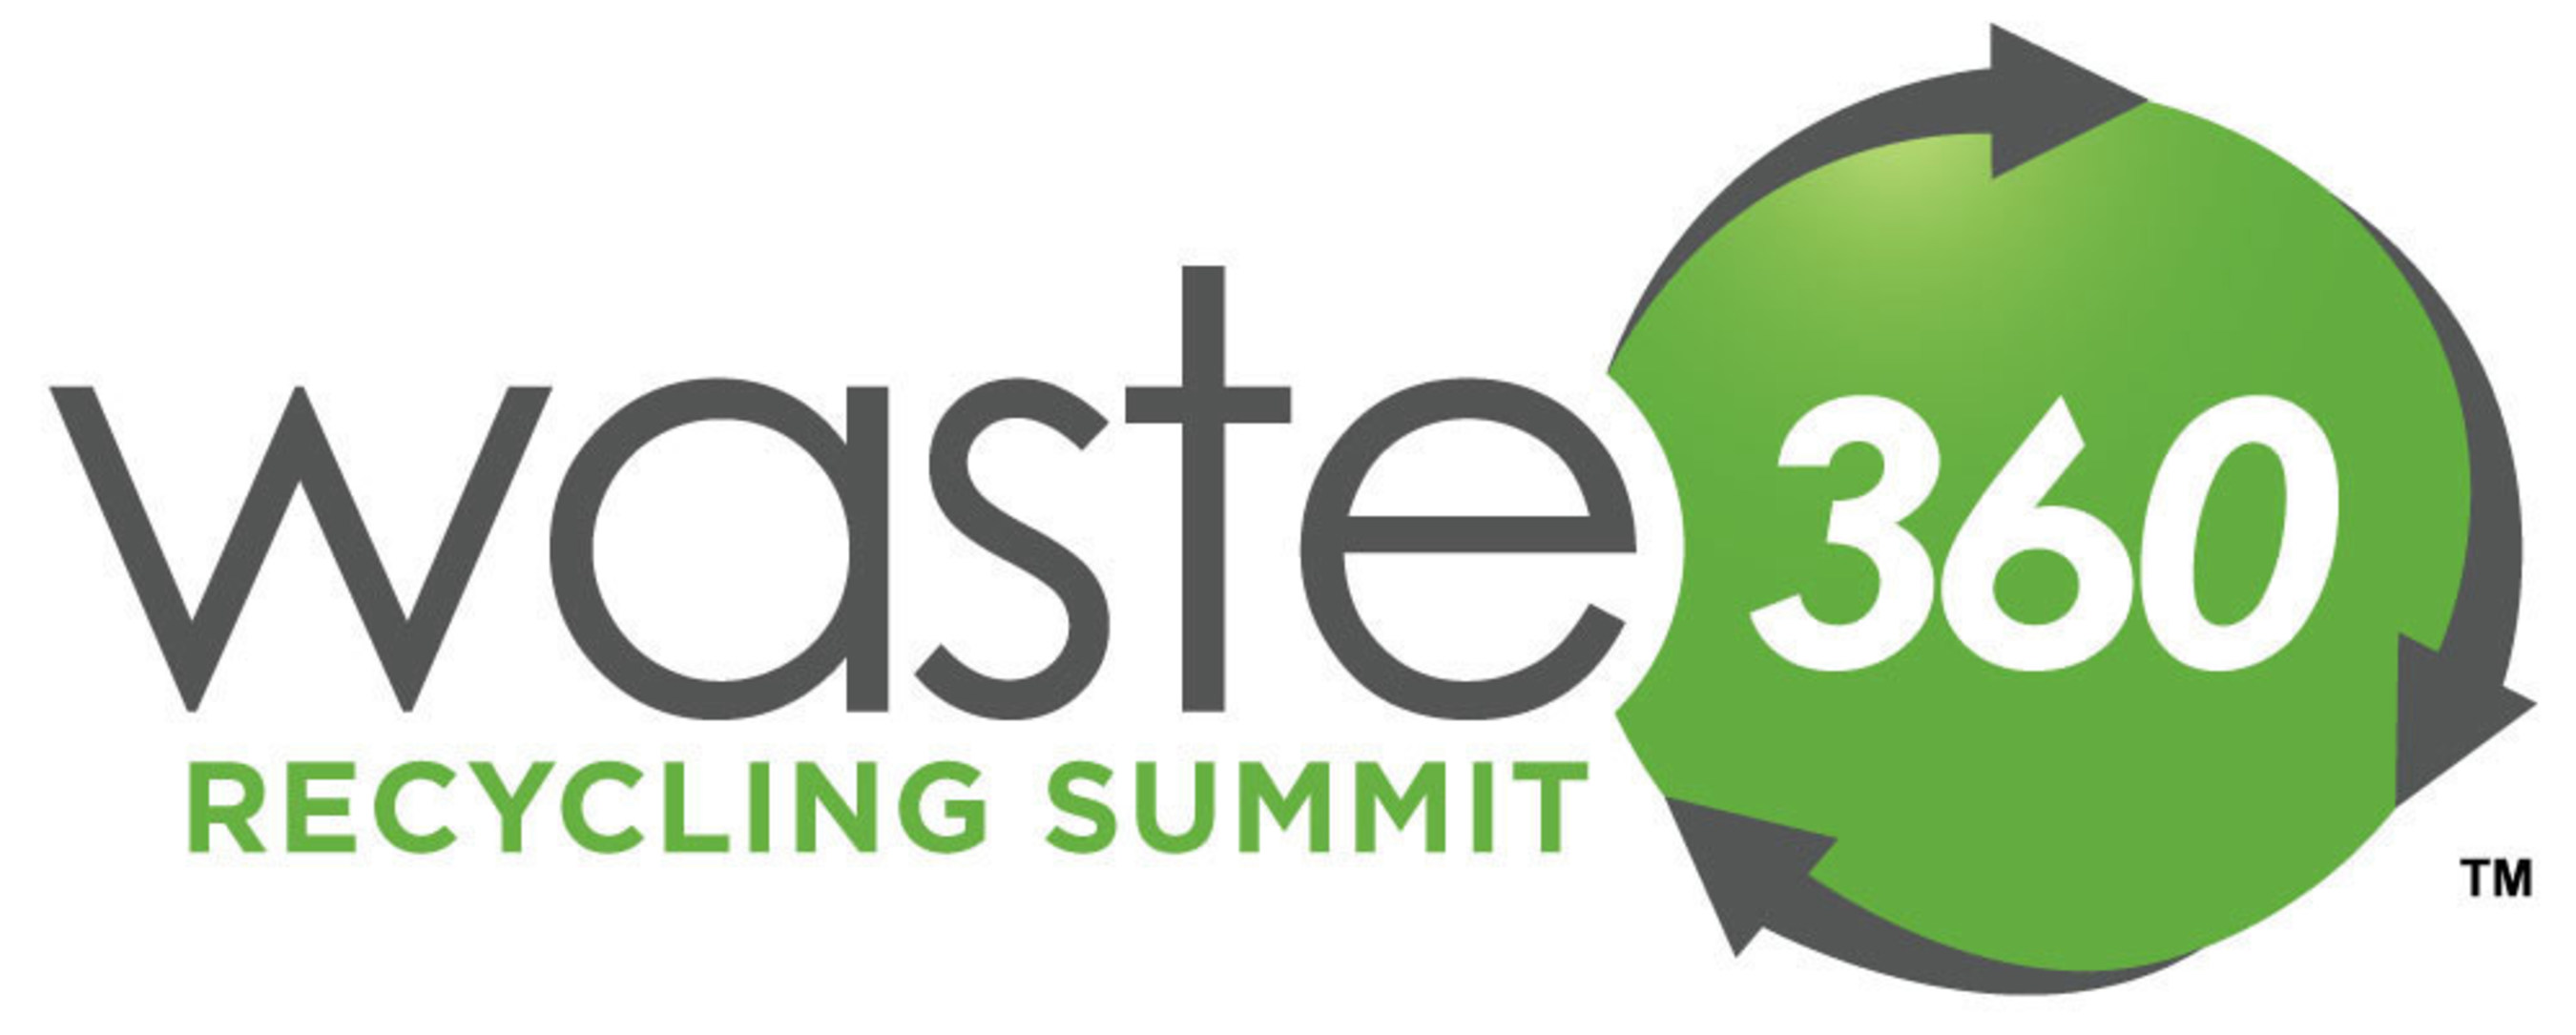 Green Is The New Black At Penton's Waste360 Recycling Summit